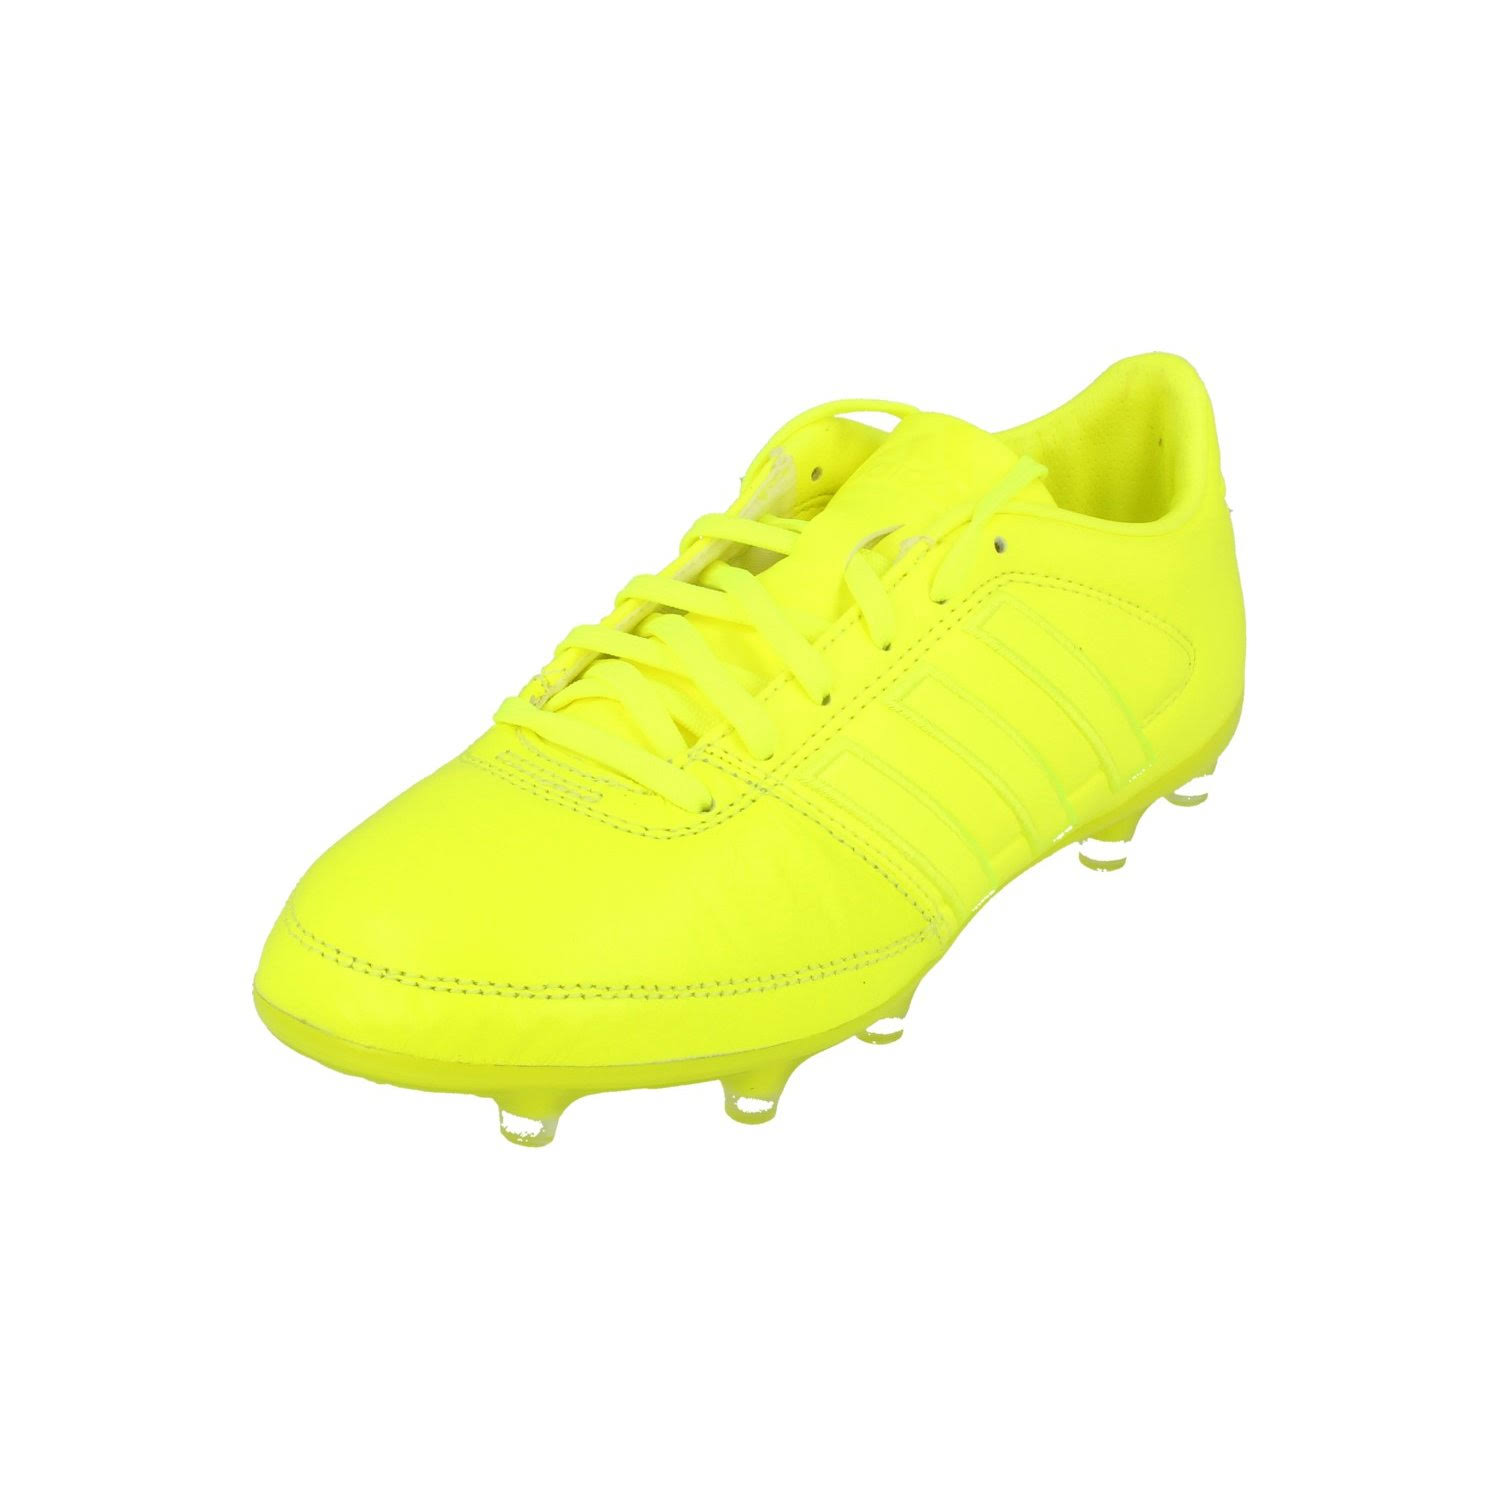 (4.5) Adidas Gloro 16.1 FG Mens Football Boots Soccer Cleats